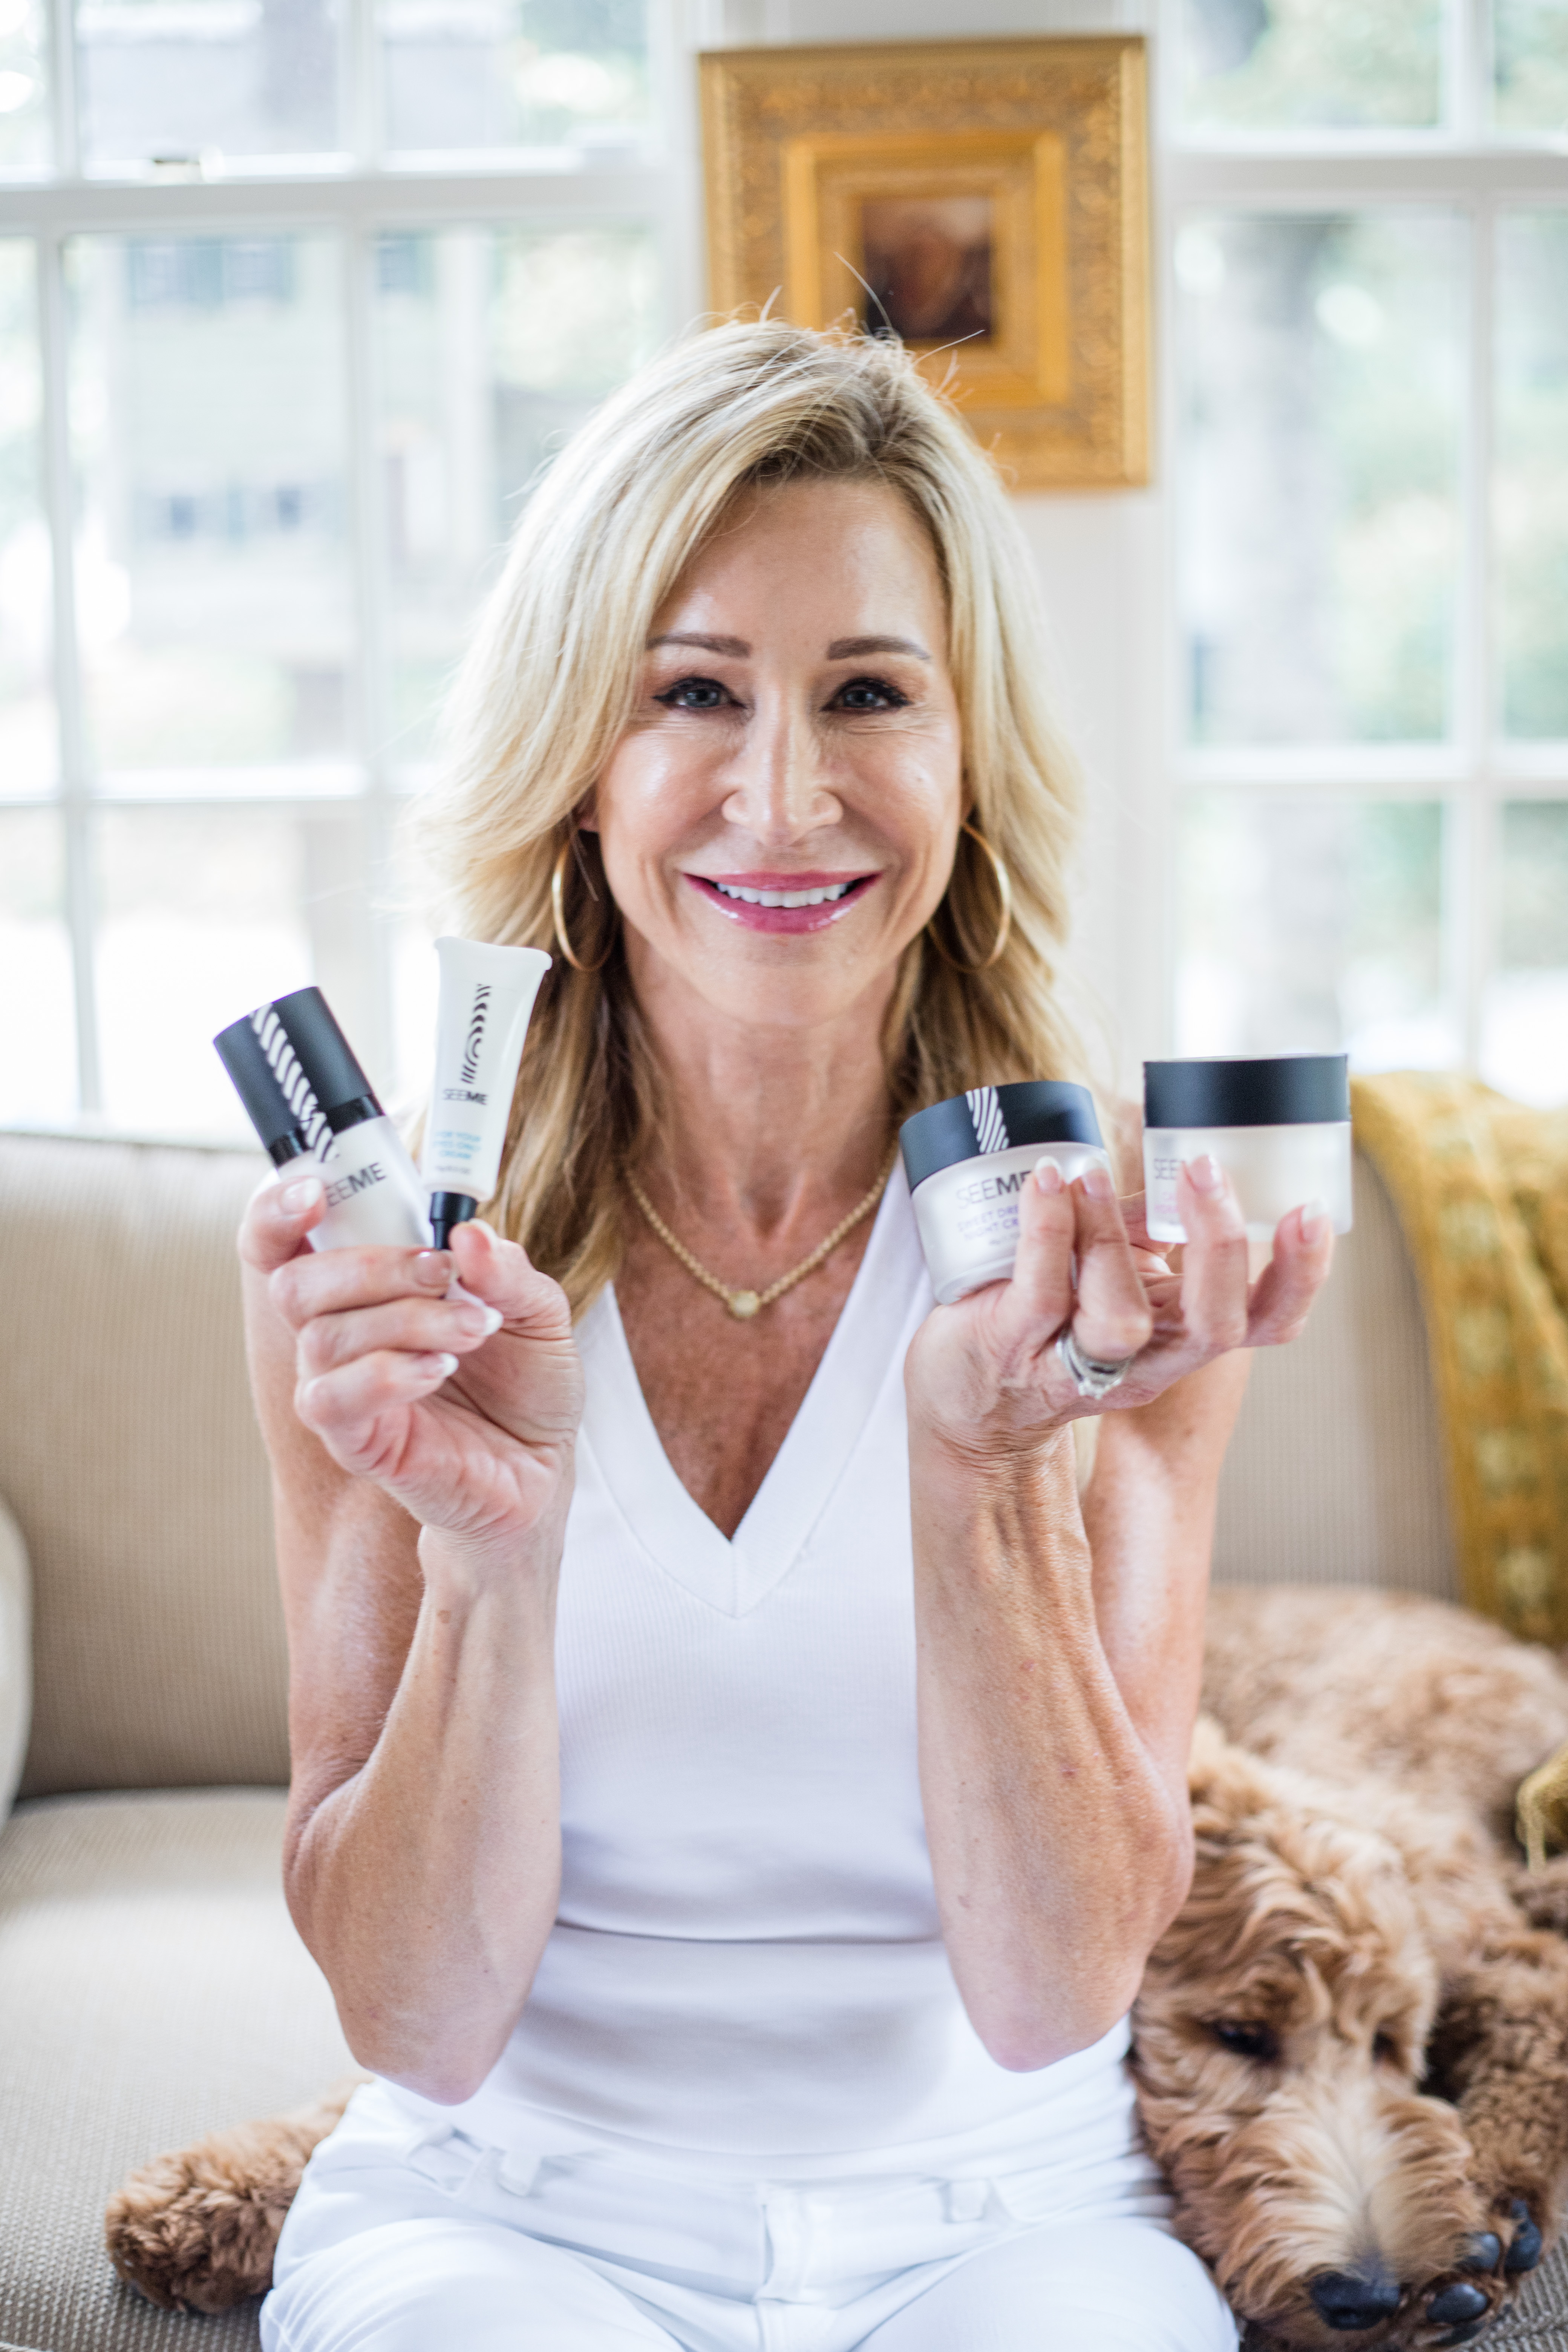 older model in white holding SeeMe Beauty Skin Care Kit products